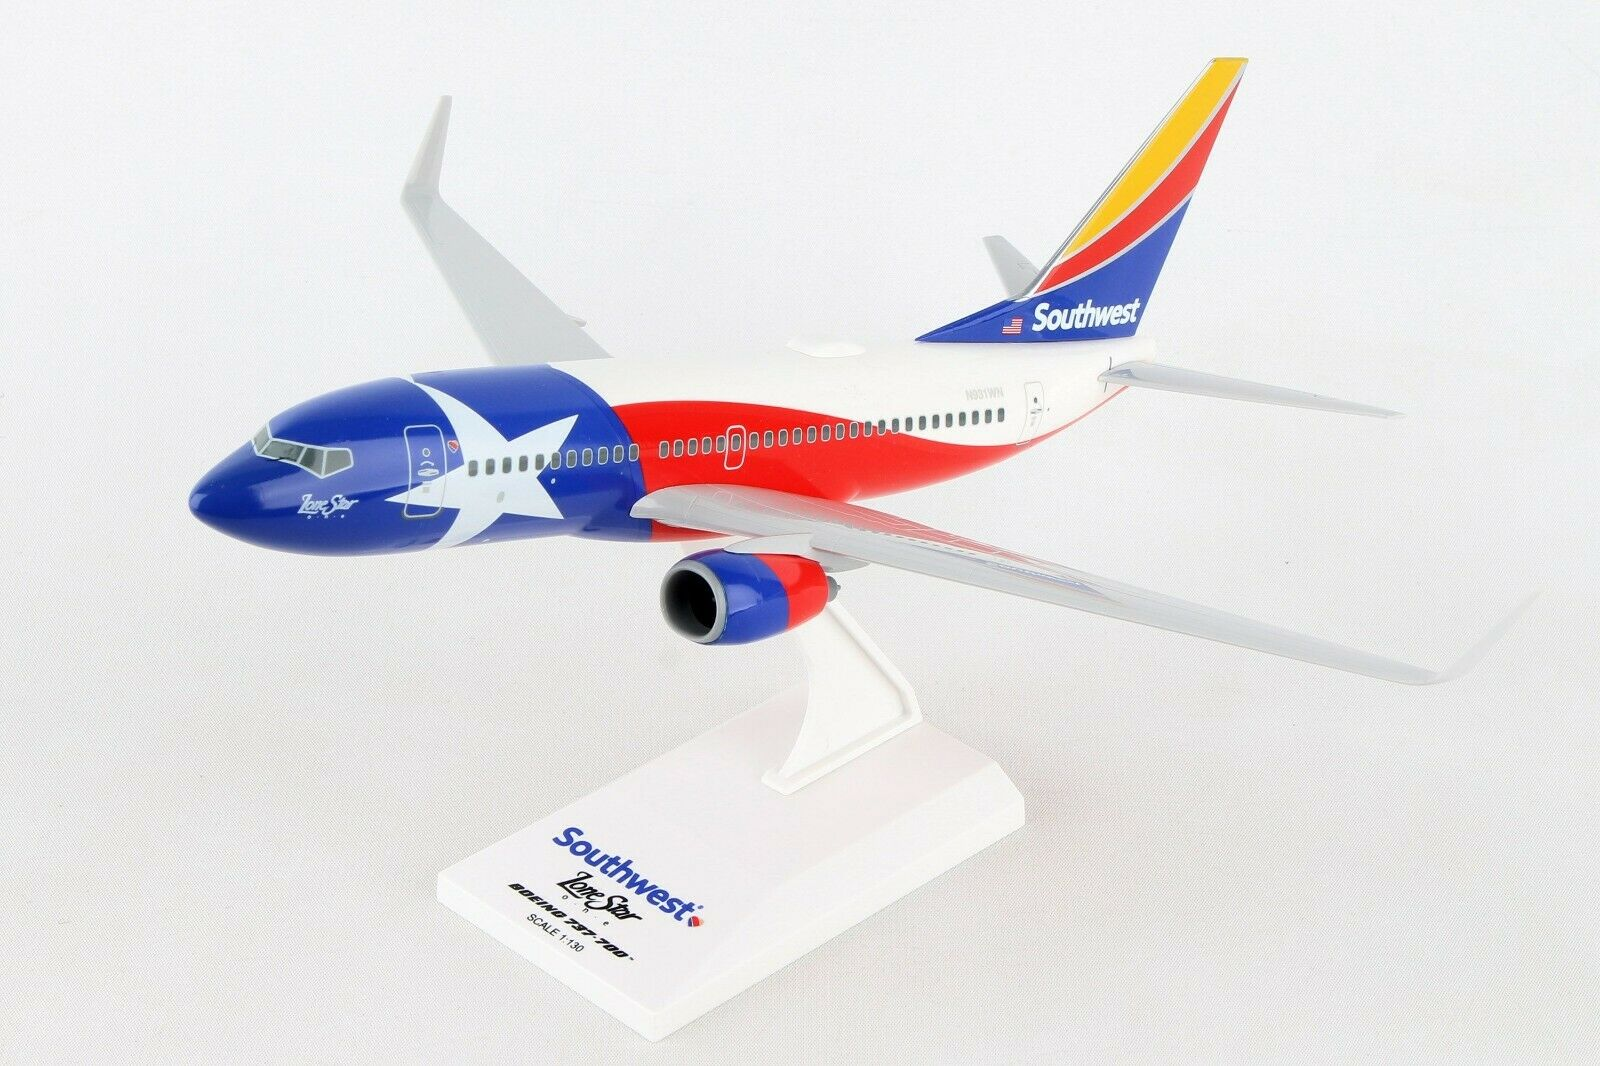 SKYMARKS SKR867 SWA SOUTHWEST AIRLINES LONE STAR ONE BOEING 737-700 1 130 MODEL